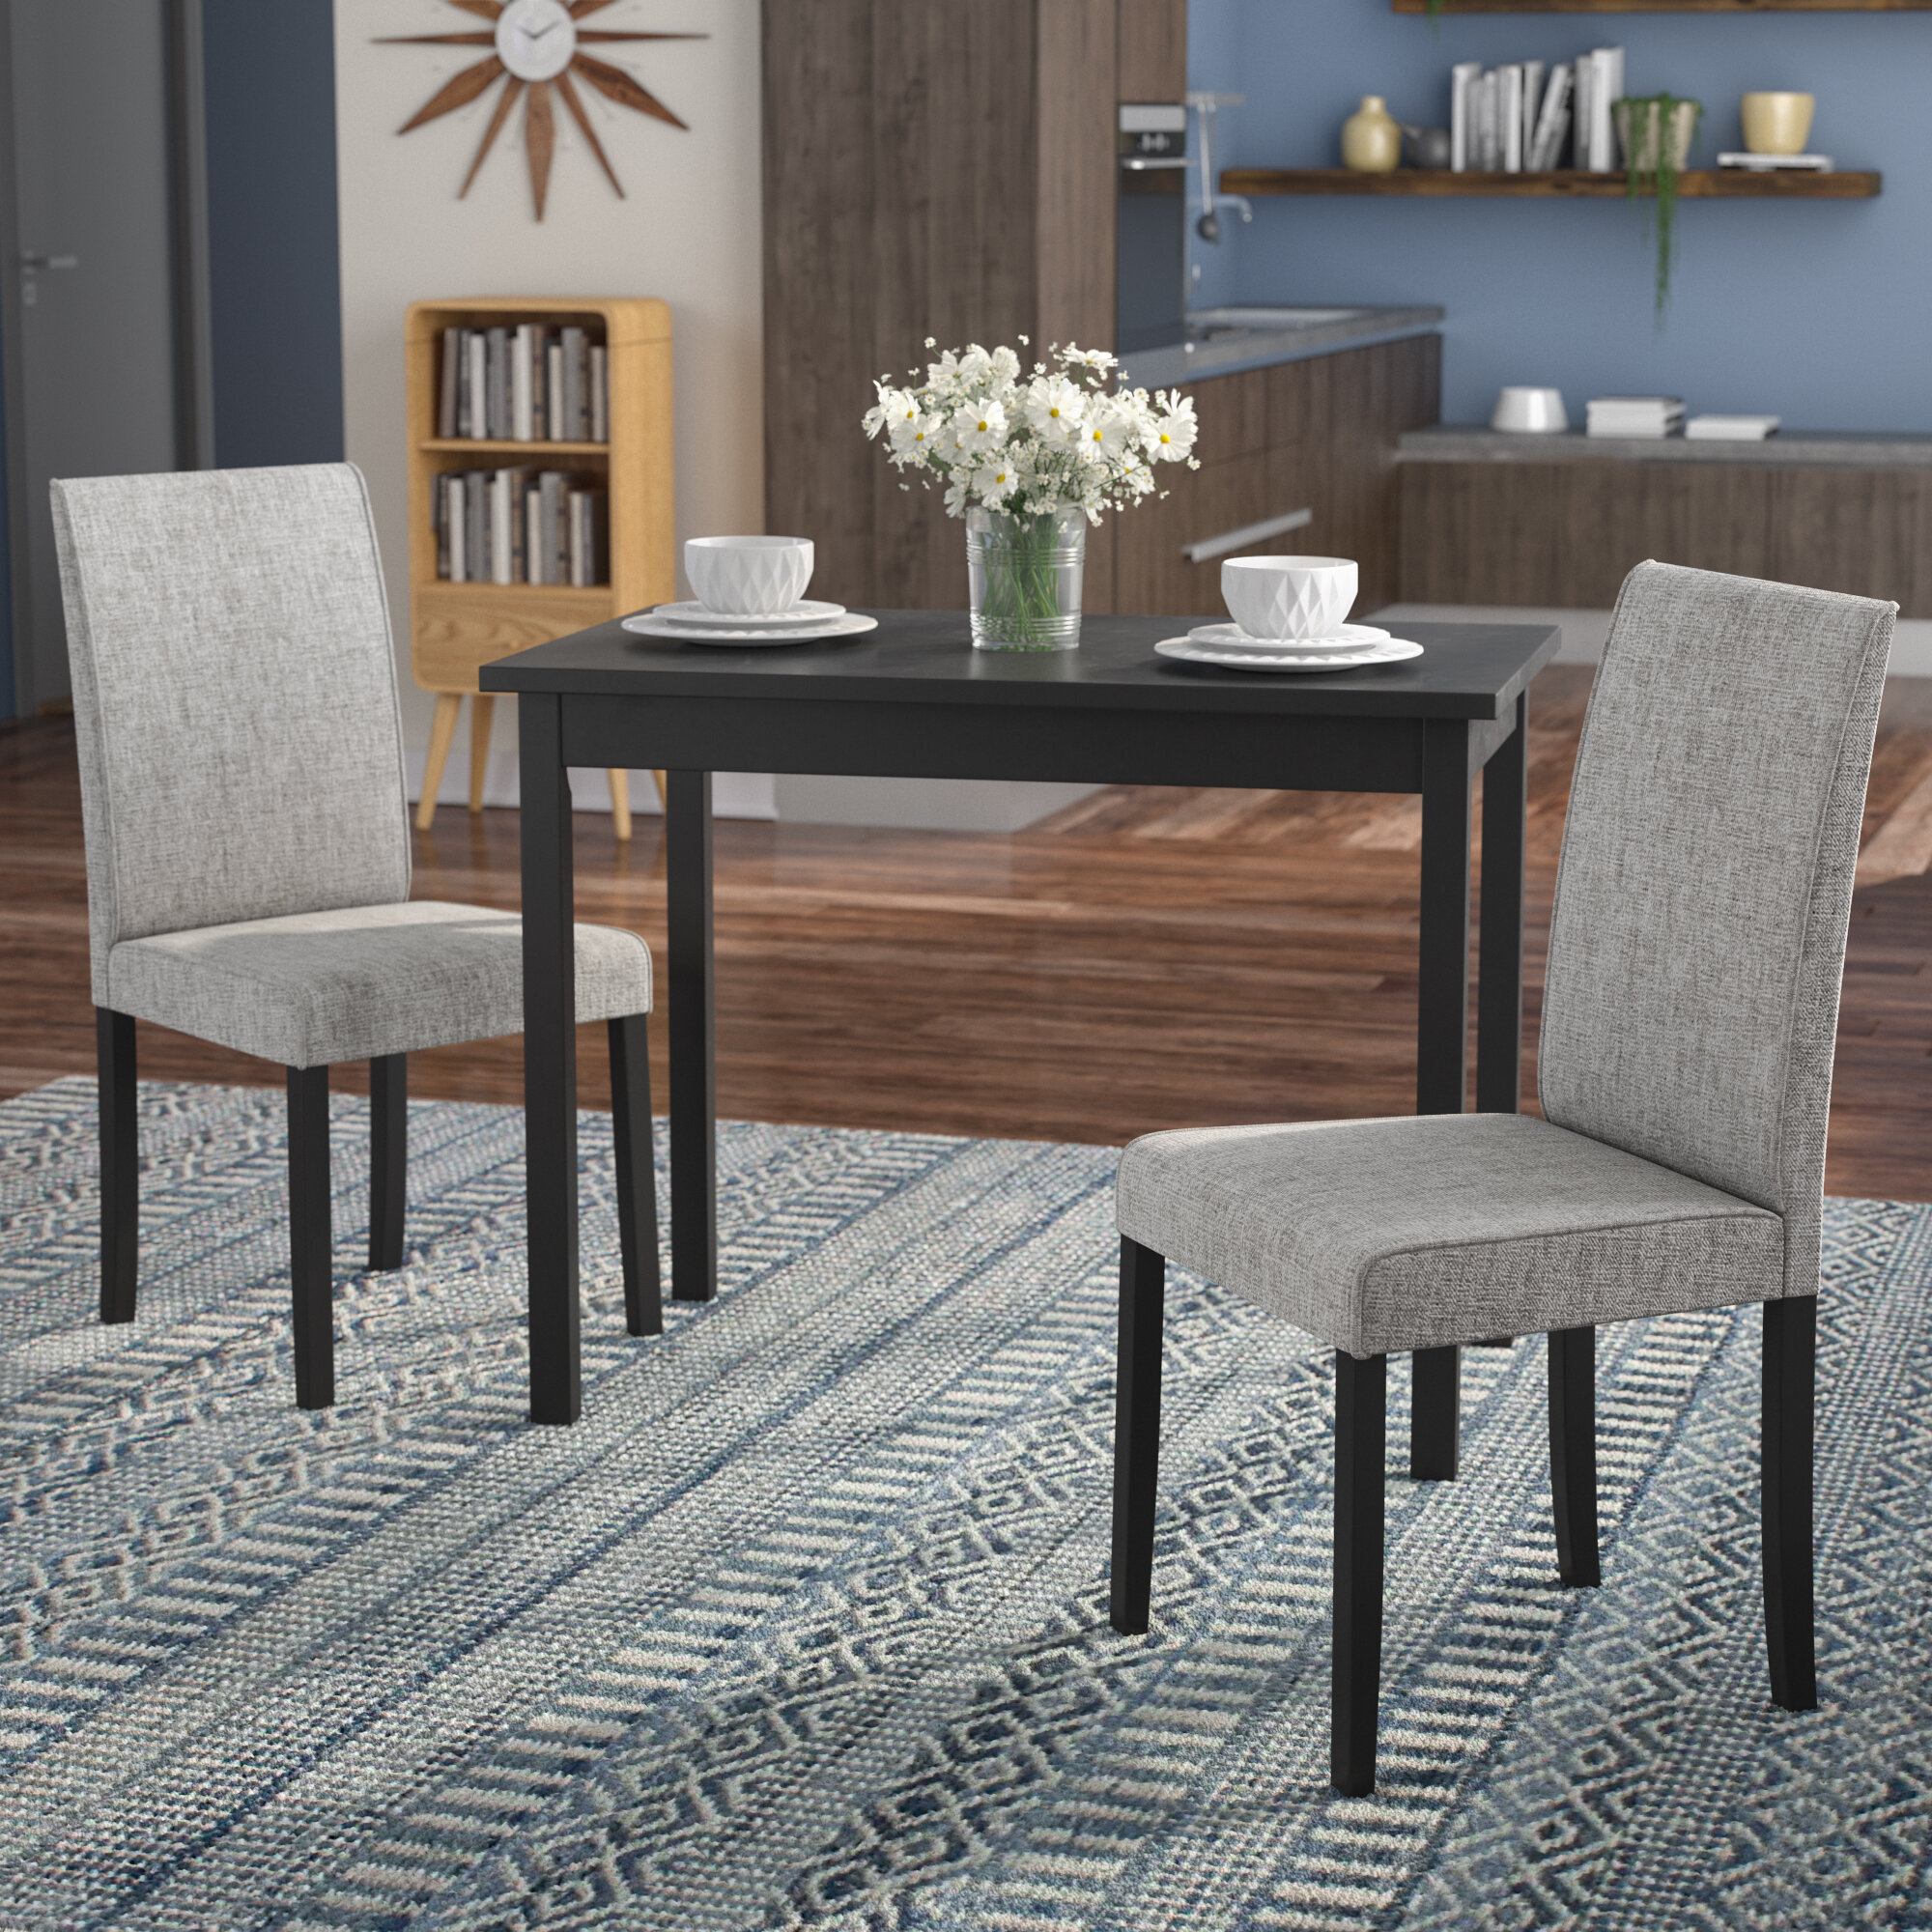 Kitchen & Dining Room Sets   On Sale Now